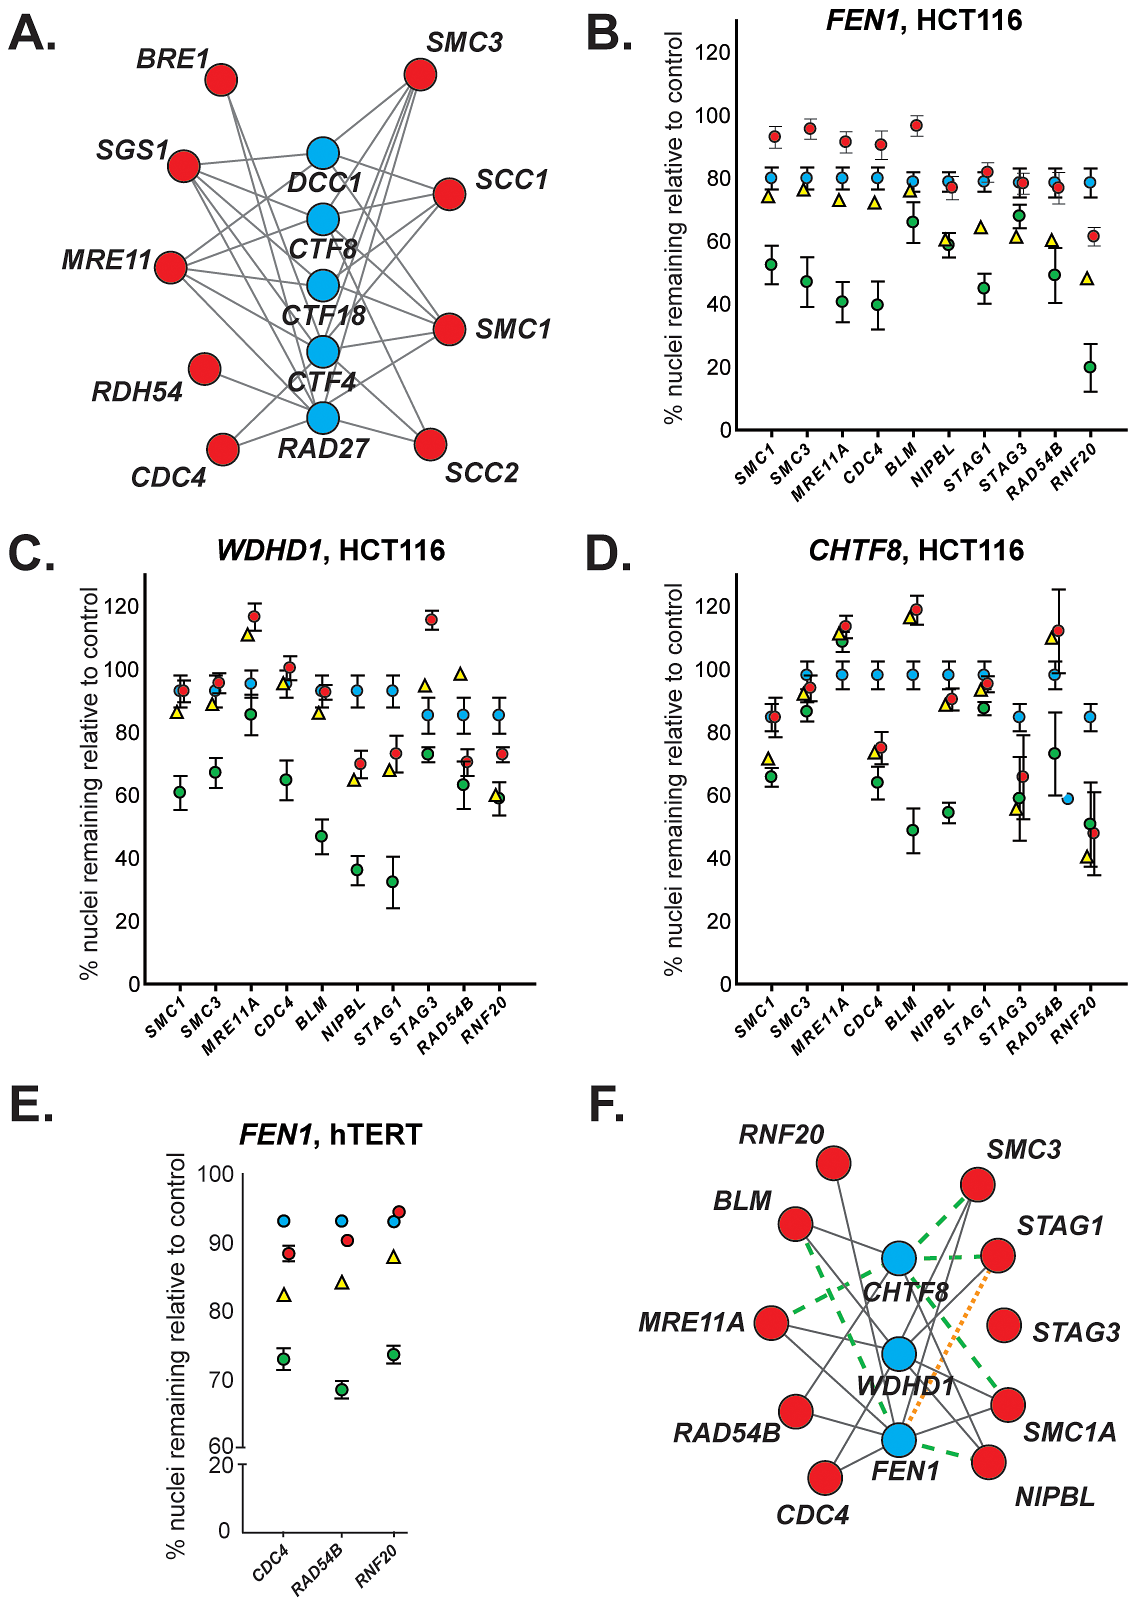 Evolutionary conservation of synthetic lethal interactions in HCT116 cells.